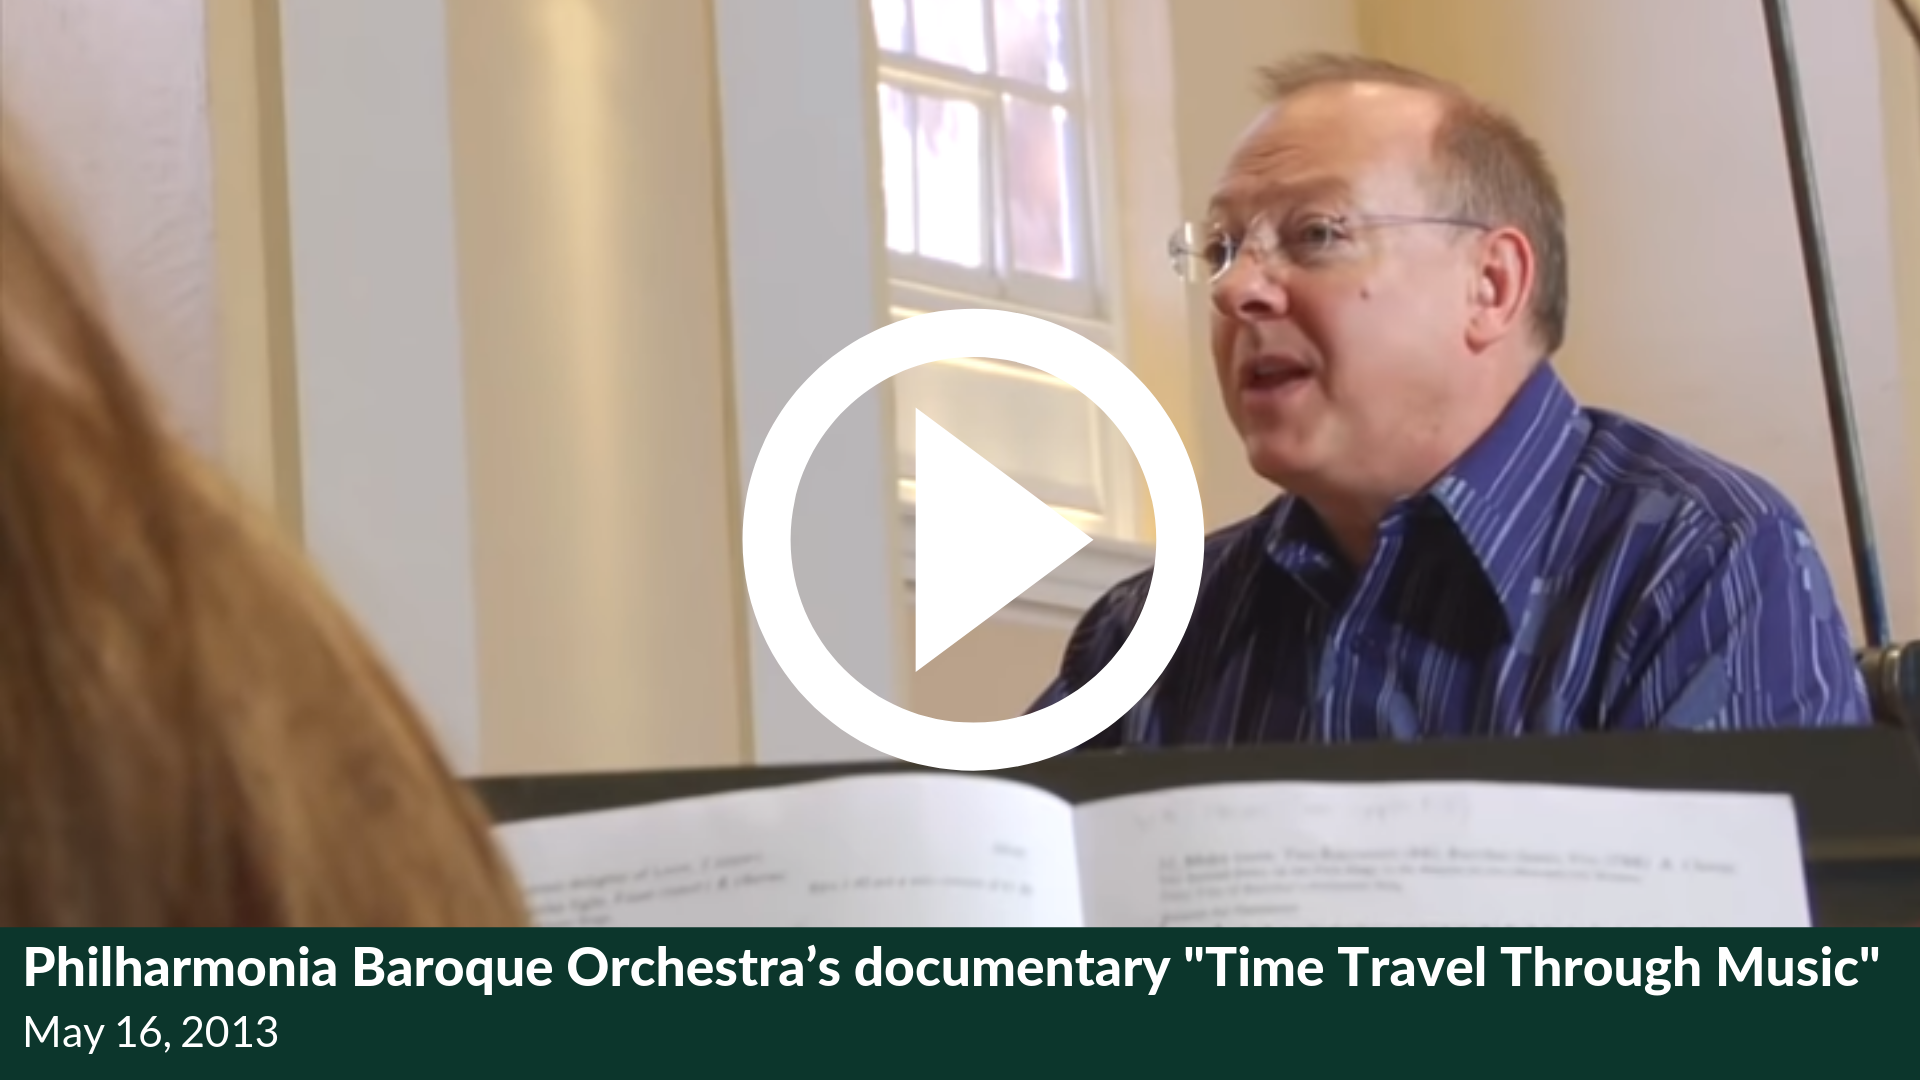 Philharmonia Baroque Orchestra's documentary Time Travel Through Music